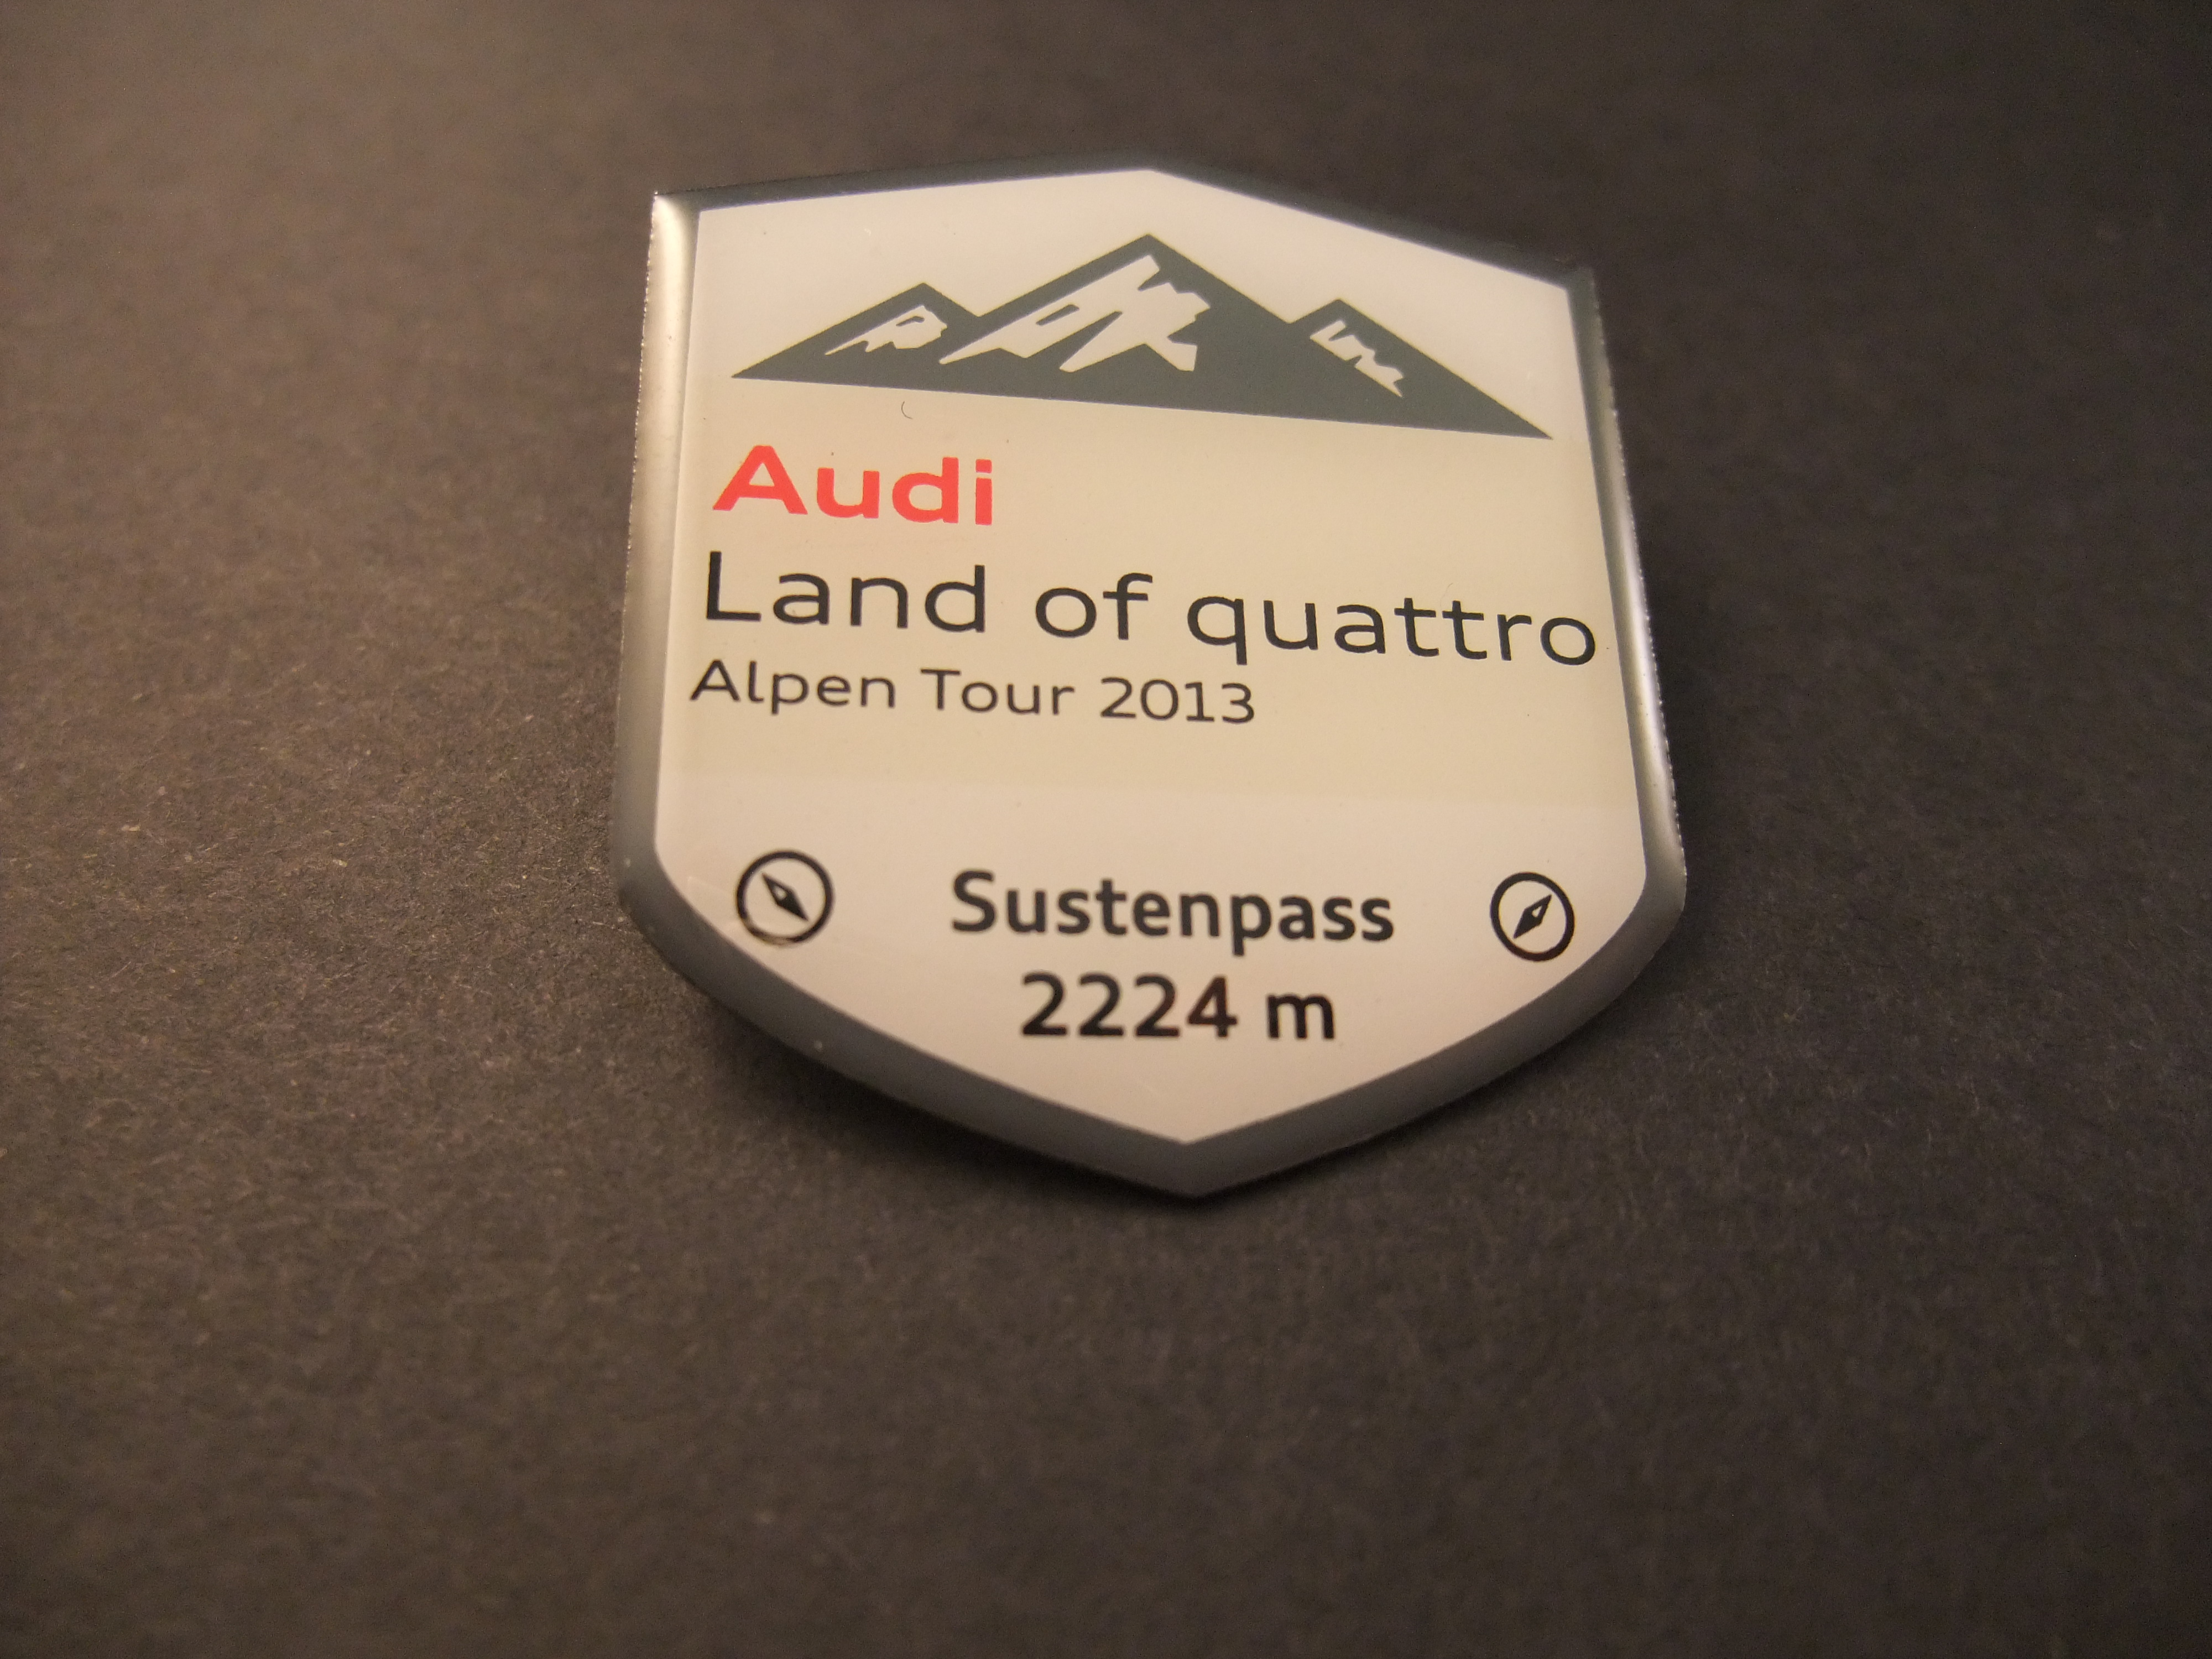 Audi Land of quattro Alpen Tour 2013 Susten Pass 2224 m